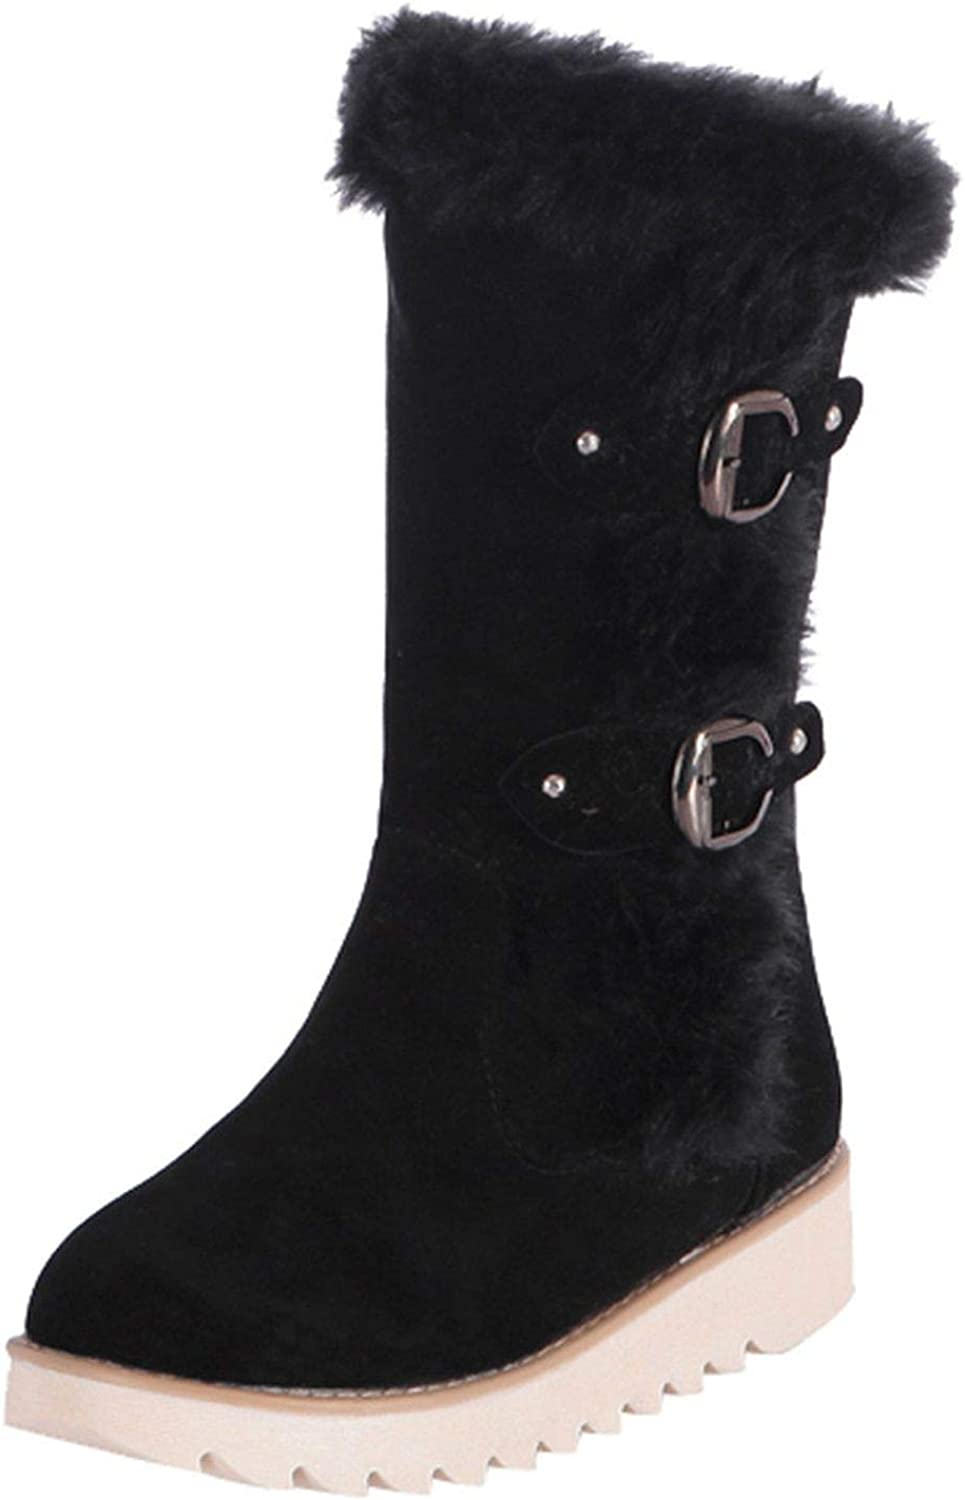 Spinning Non-Slip Boot shoes Suede Round Toe Buckle Strap Flat shoes Middle Tube Boot Black